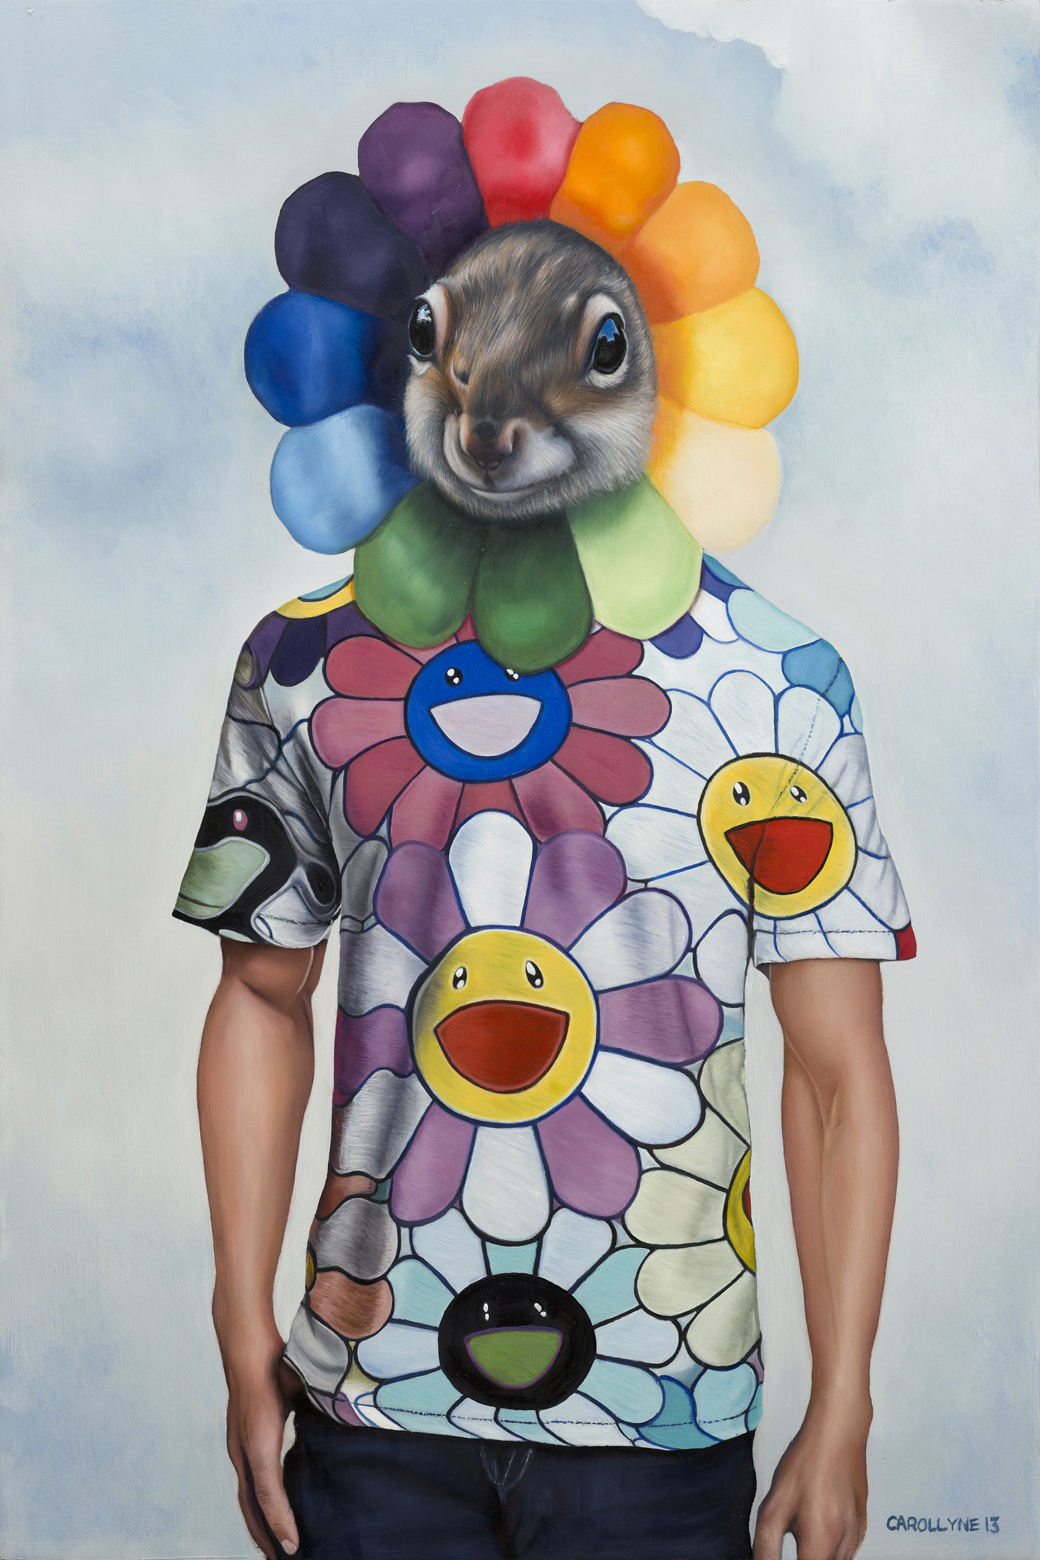 Murakami Squirrel, 24 x 35, OIl on Wood Panel, 2013